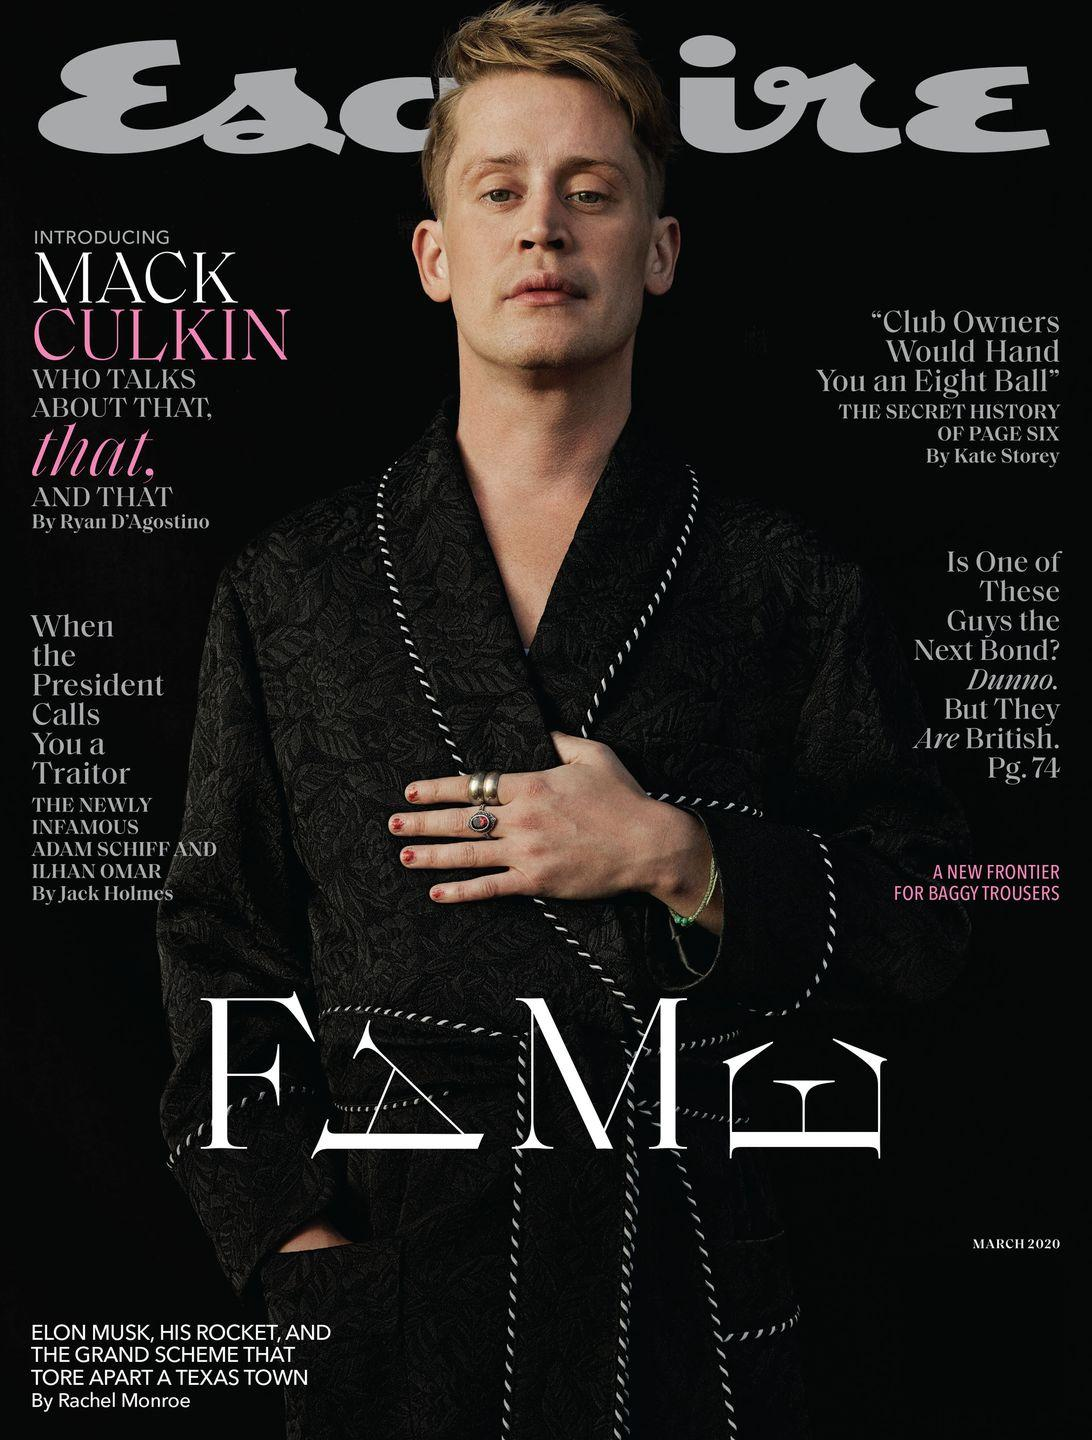 Macaulay Culkin Wants to Set the Record Straight About His Relationship With Michael Jackson